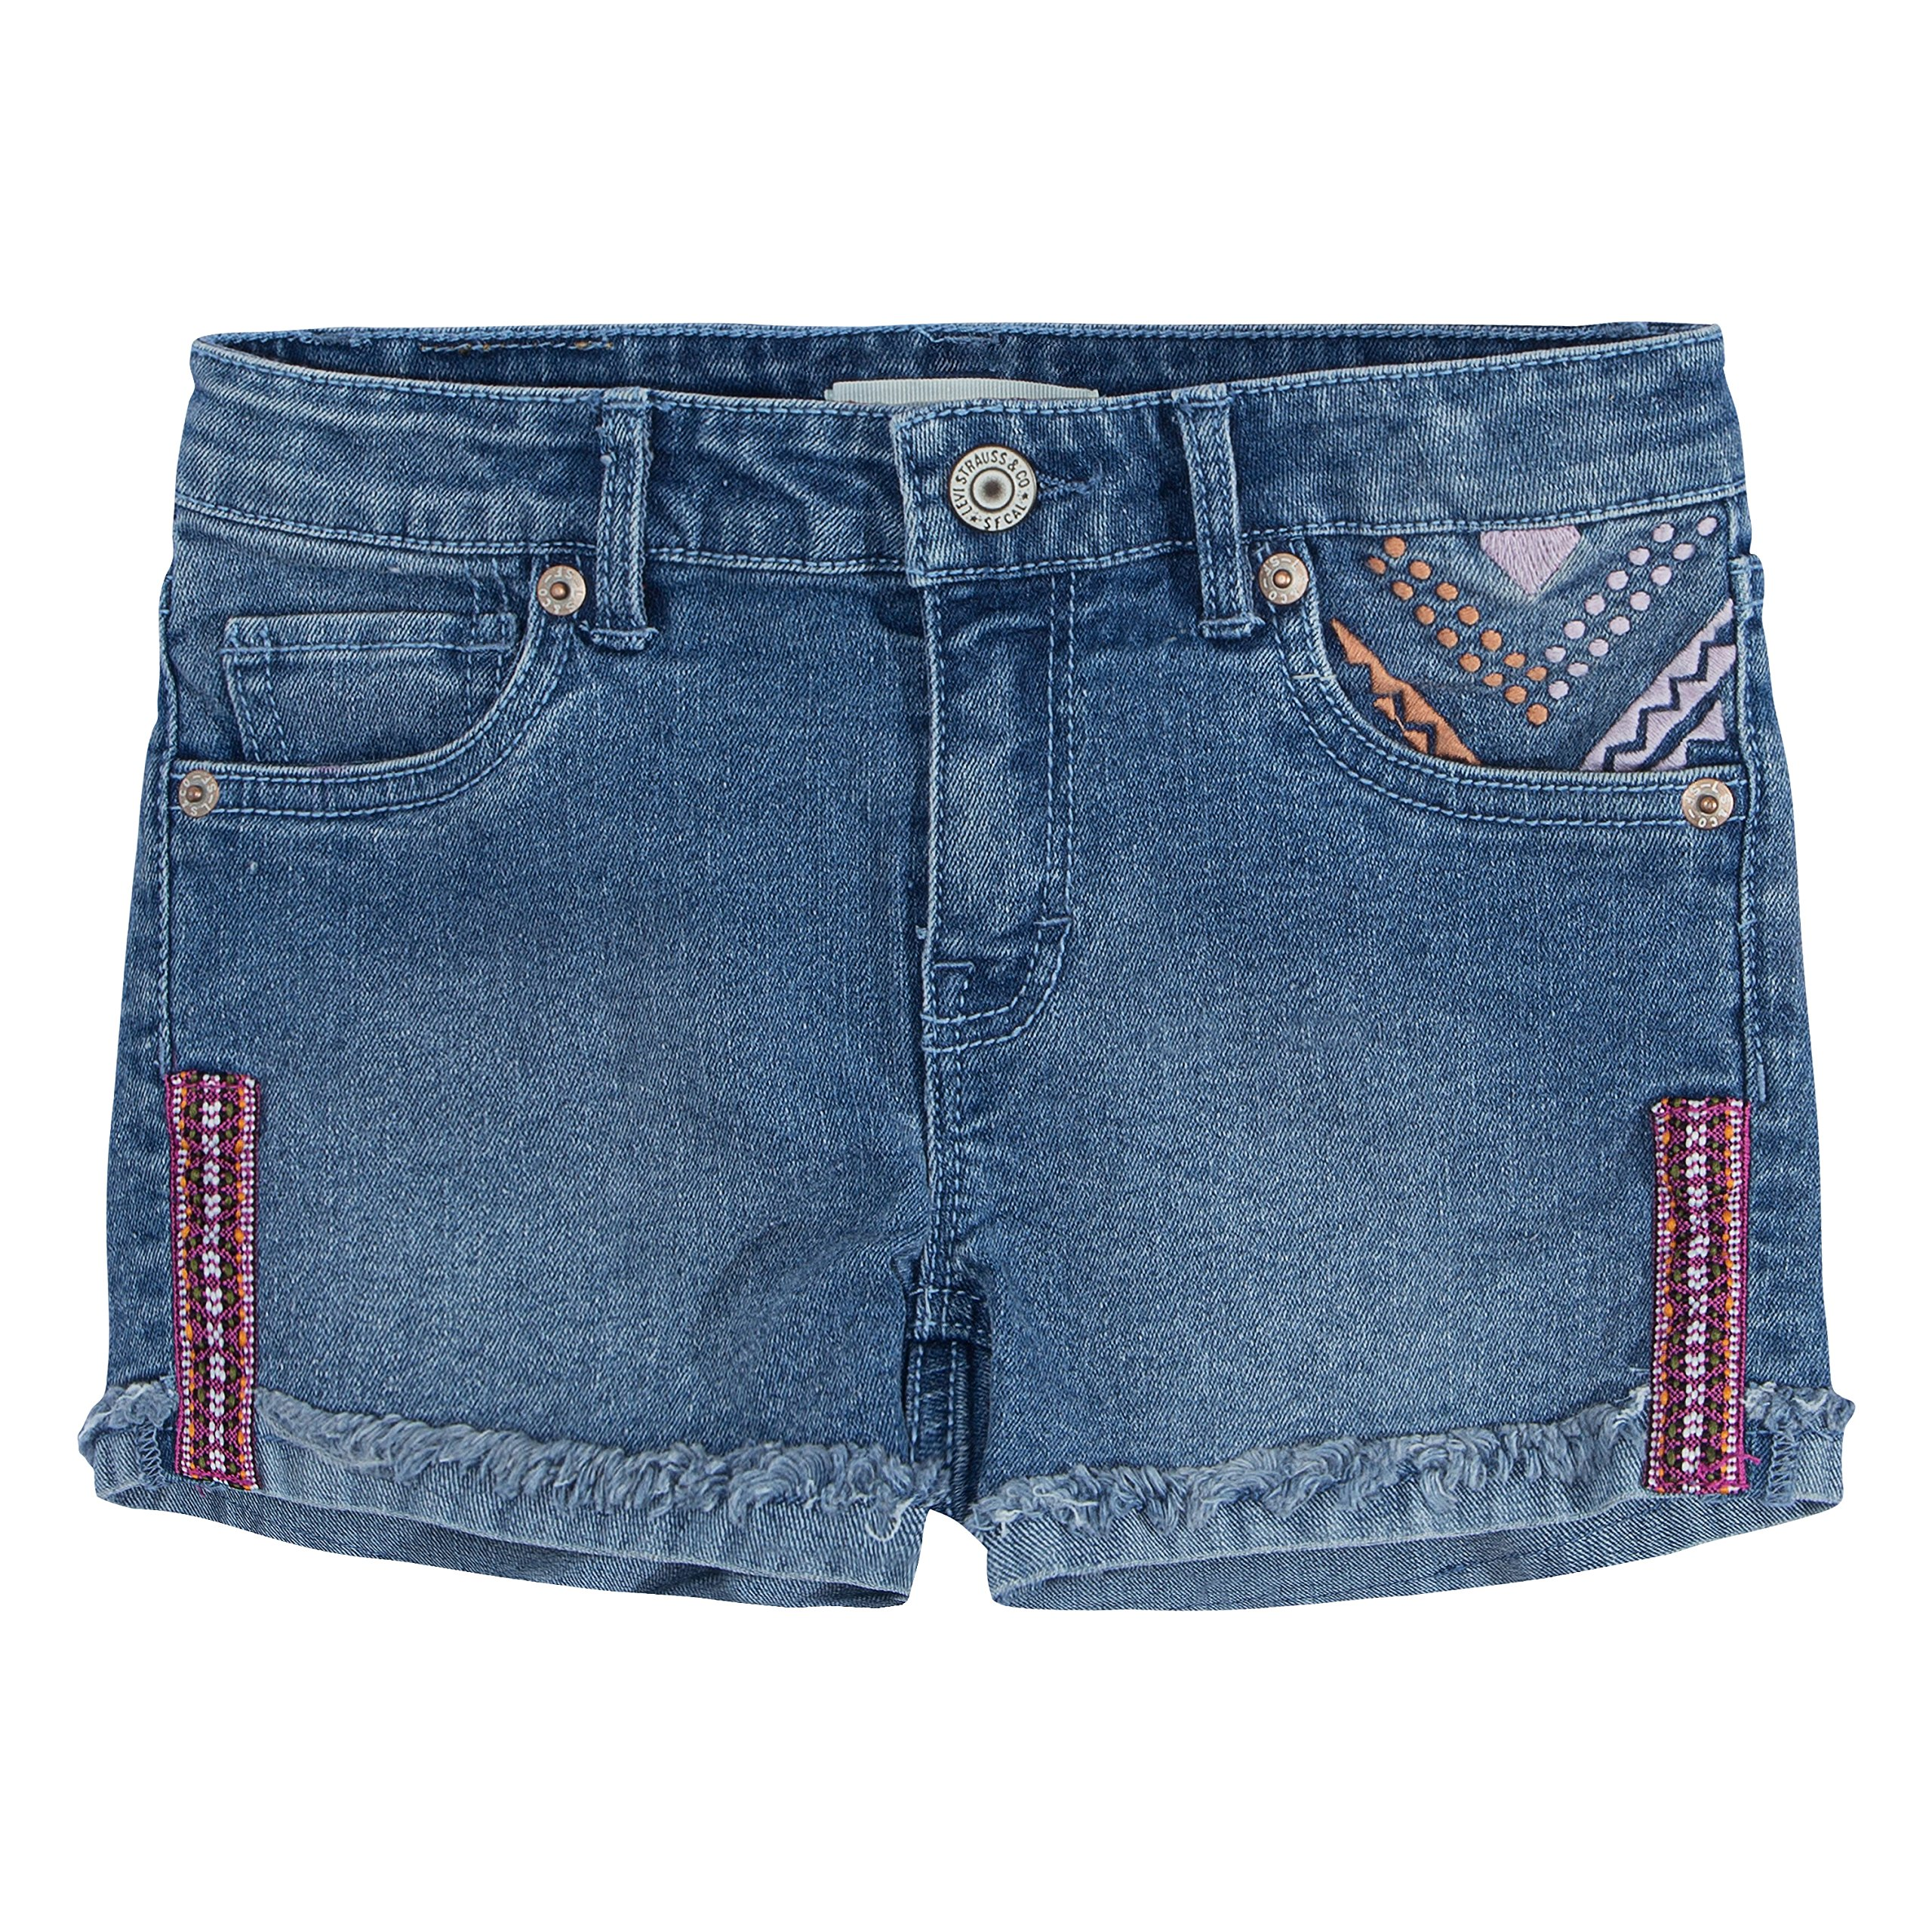 Levi's Girls' Denim Shorty Shorts